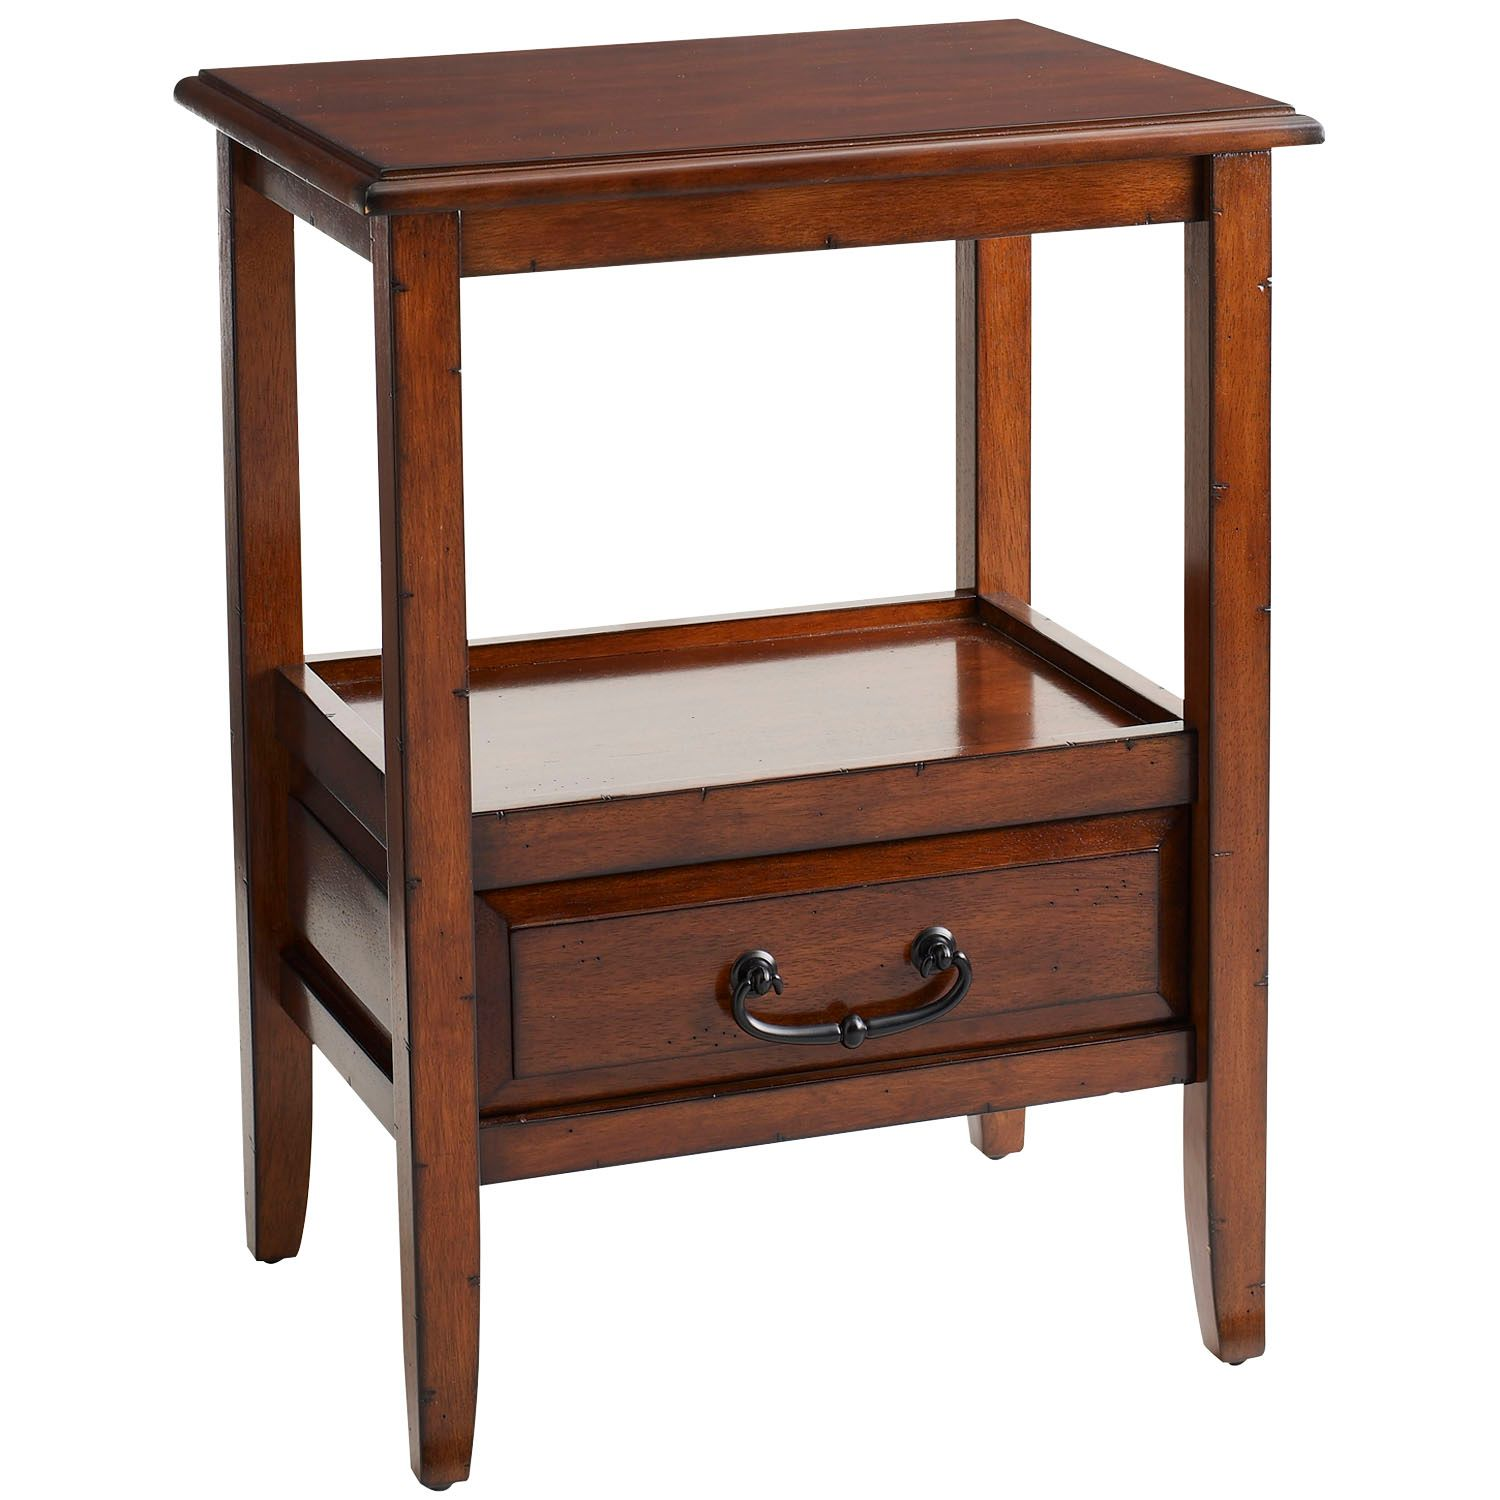 anywhere tuscan brown end table with pull handles pier imports one accent collection dresser drawer wrought iron patio dining mainstays parsons desk inch round garden storage